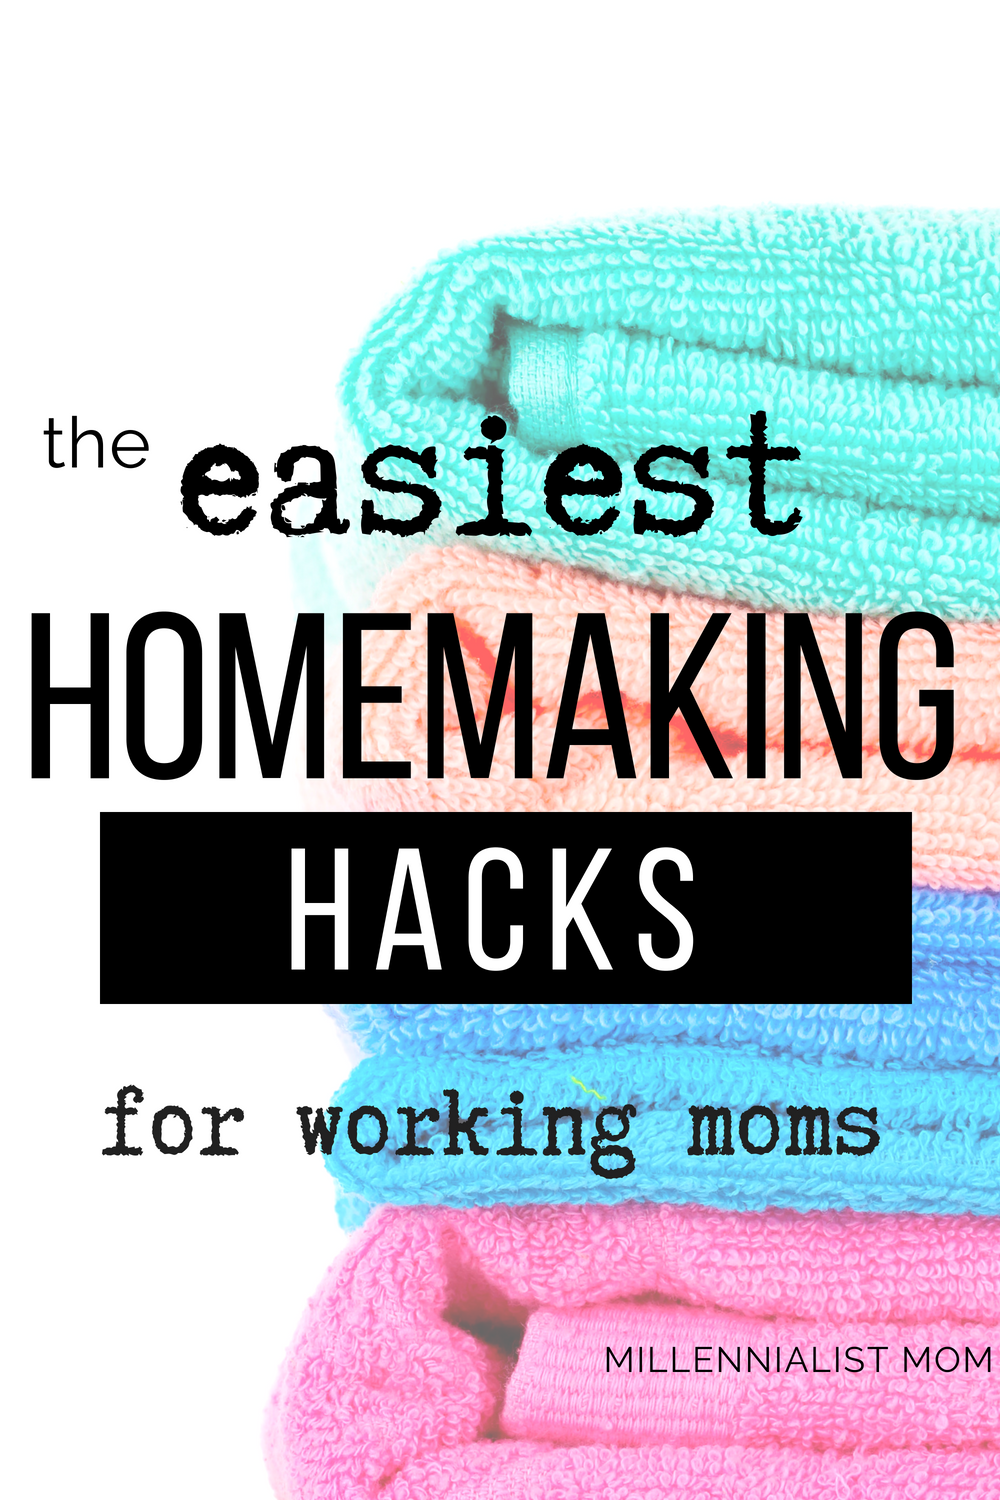 Yasss homemaking made easy! Snag these hacks for #workingmoms to keep up with housekeeping and homemaking with no time to spare. These lazy hacks are perfect for busy moms and generally just simple living